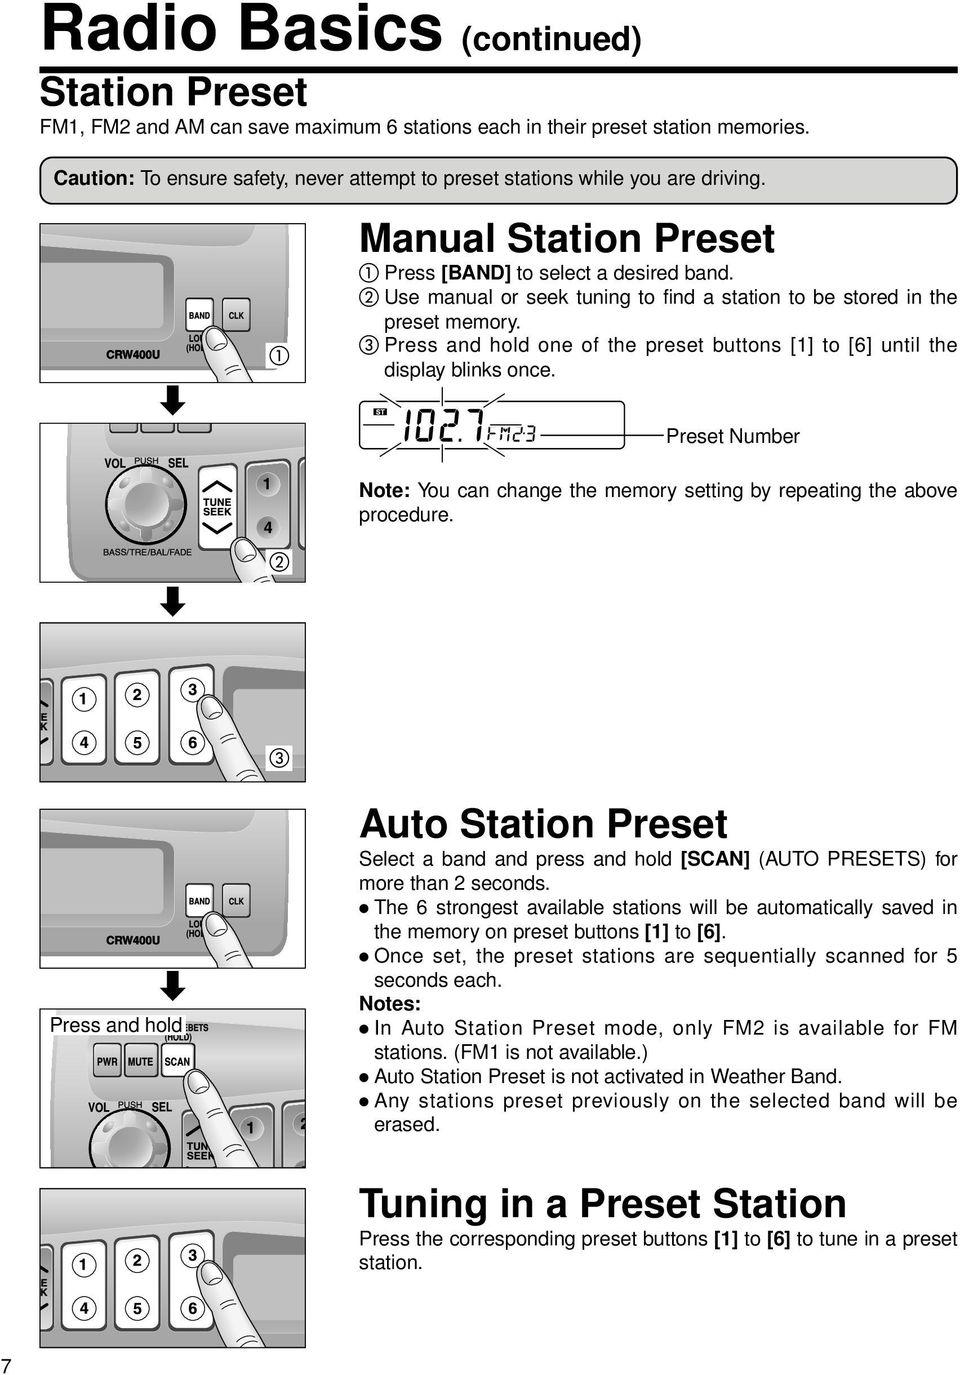 Use manual or seek tuning to find a station to be stored in the preset memory. Press and hold one of the preset buttons [1] to [6] until the display blinks once.